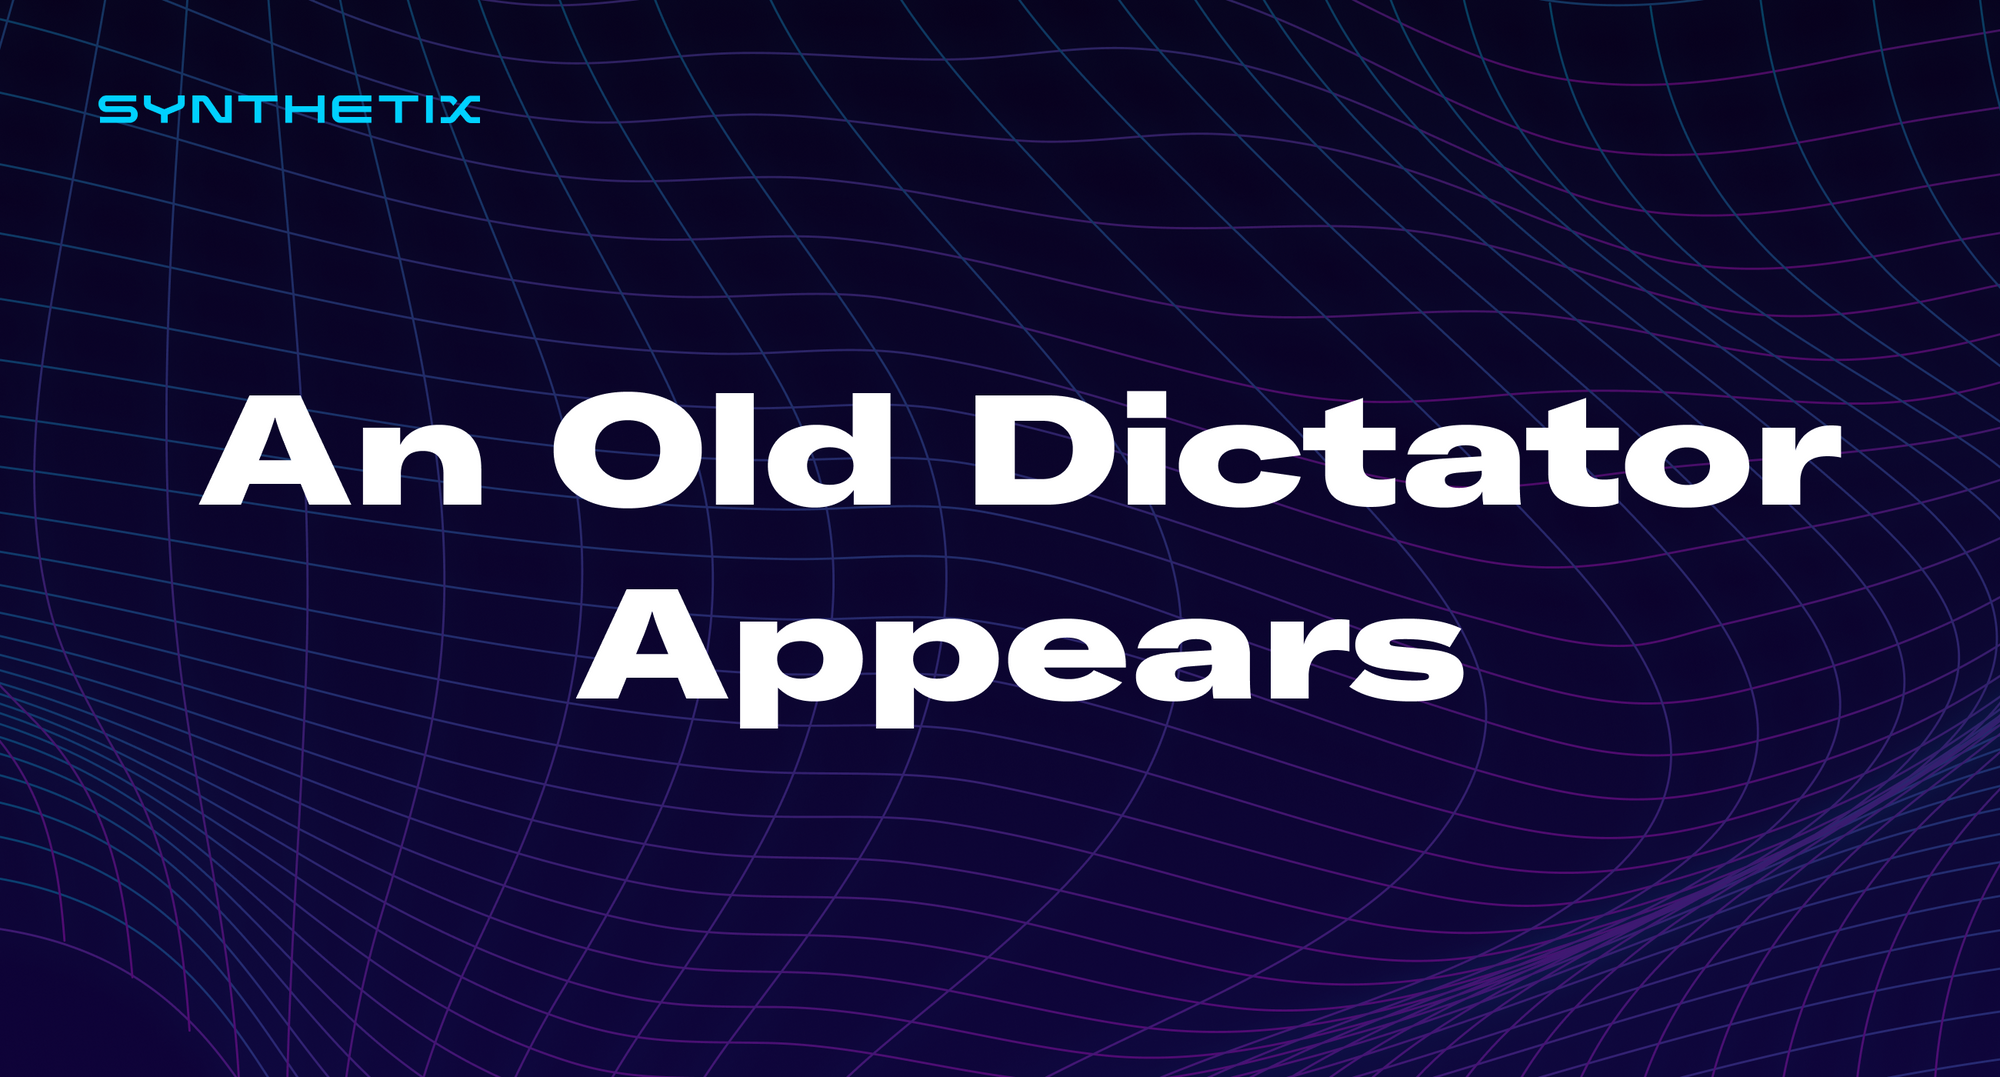 An Old Dictator Appears